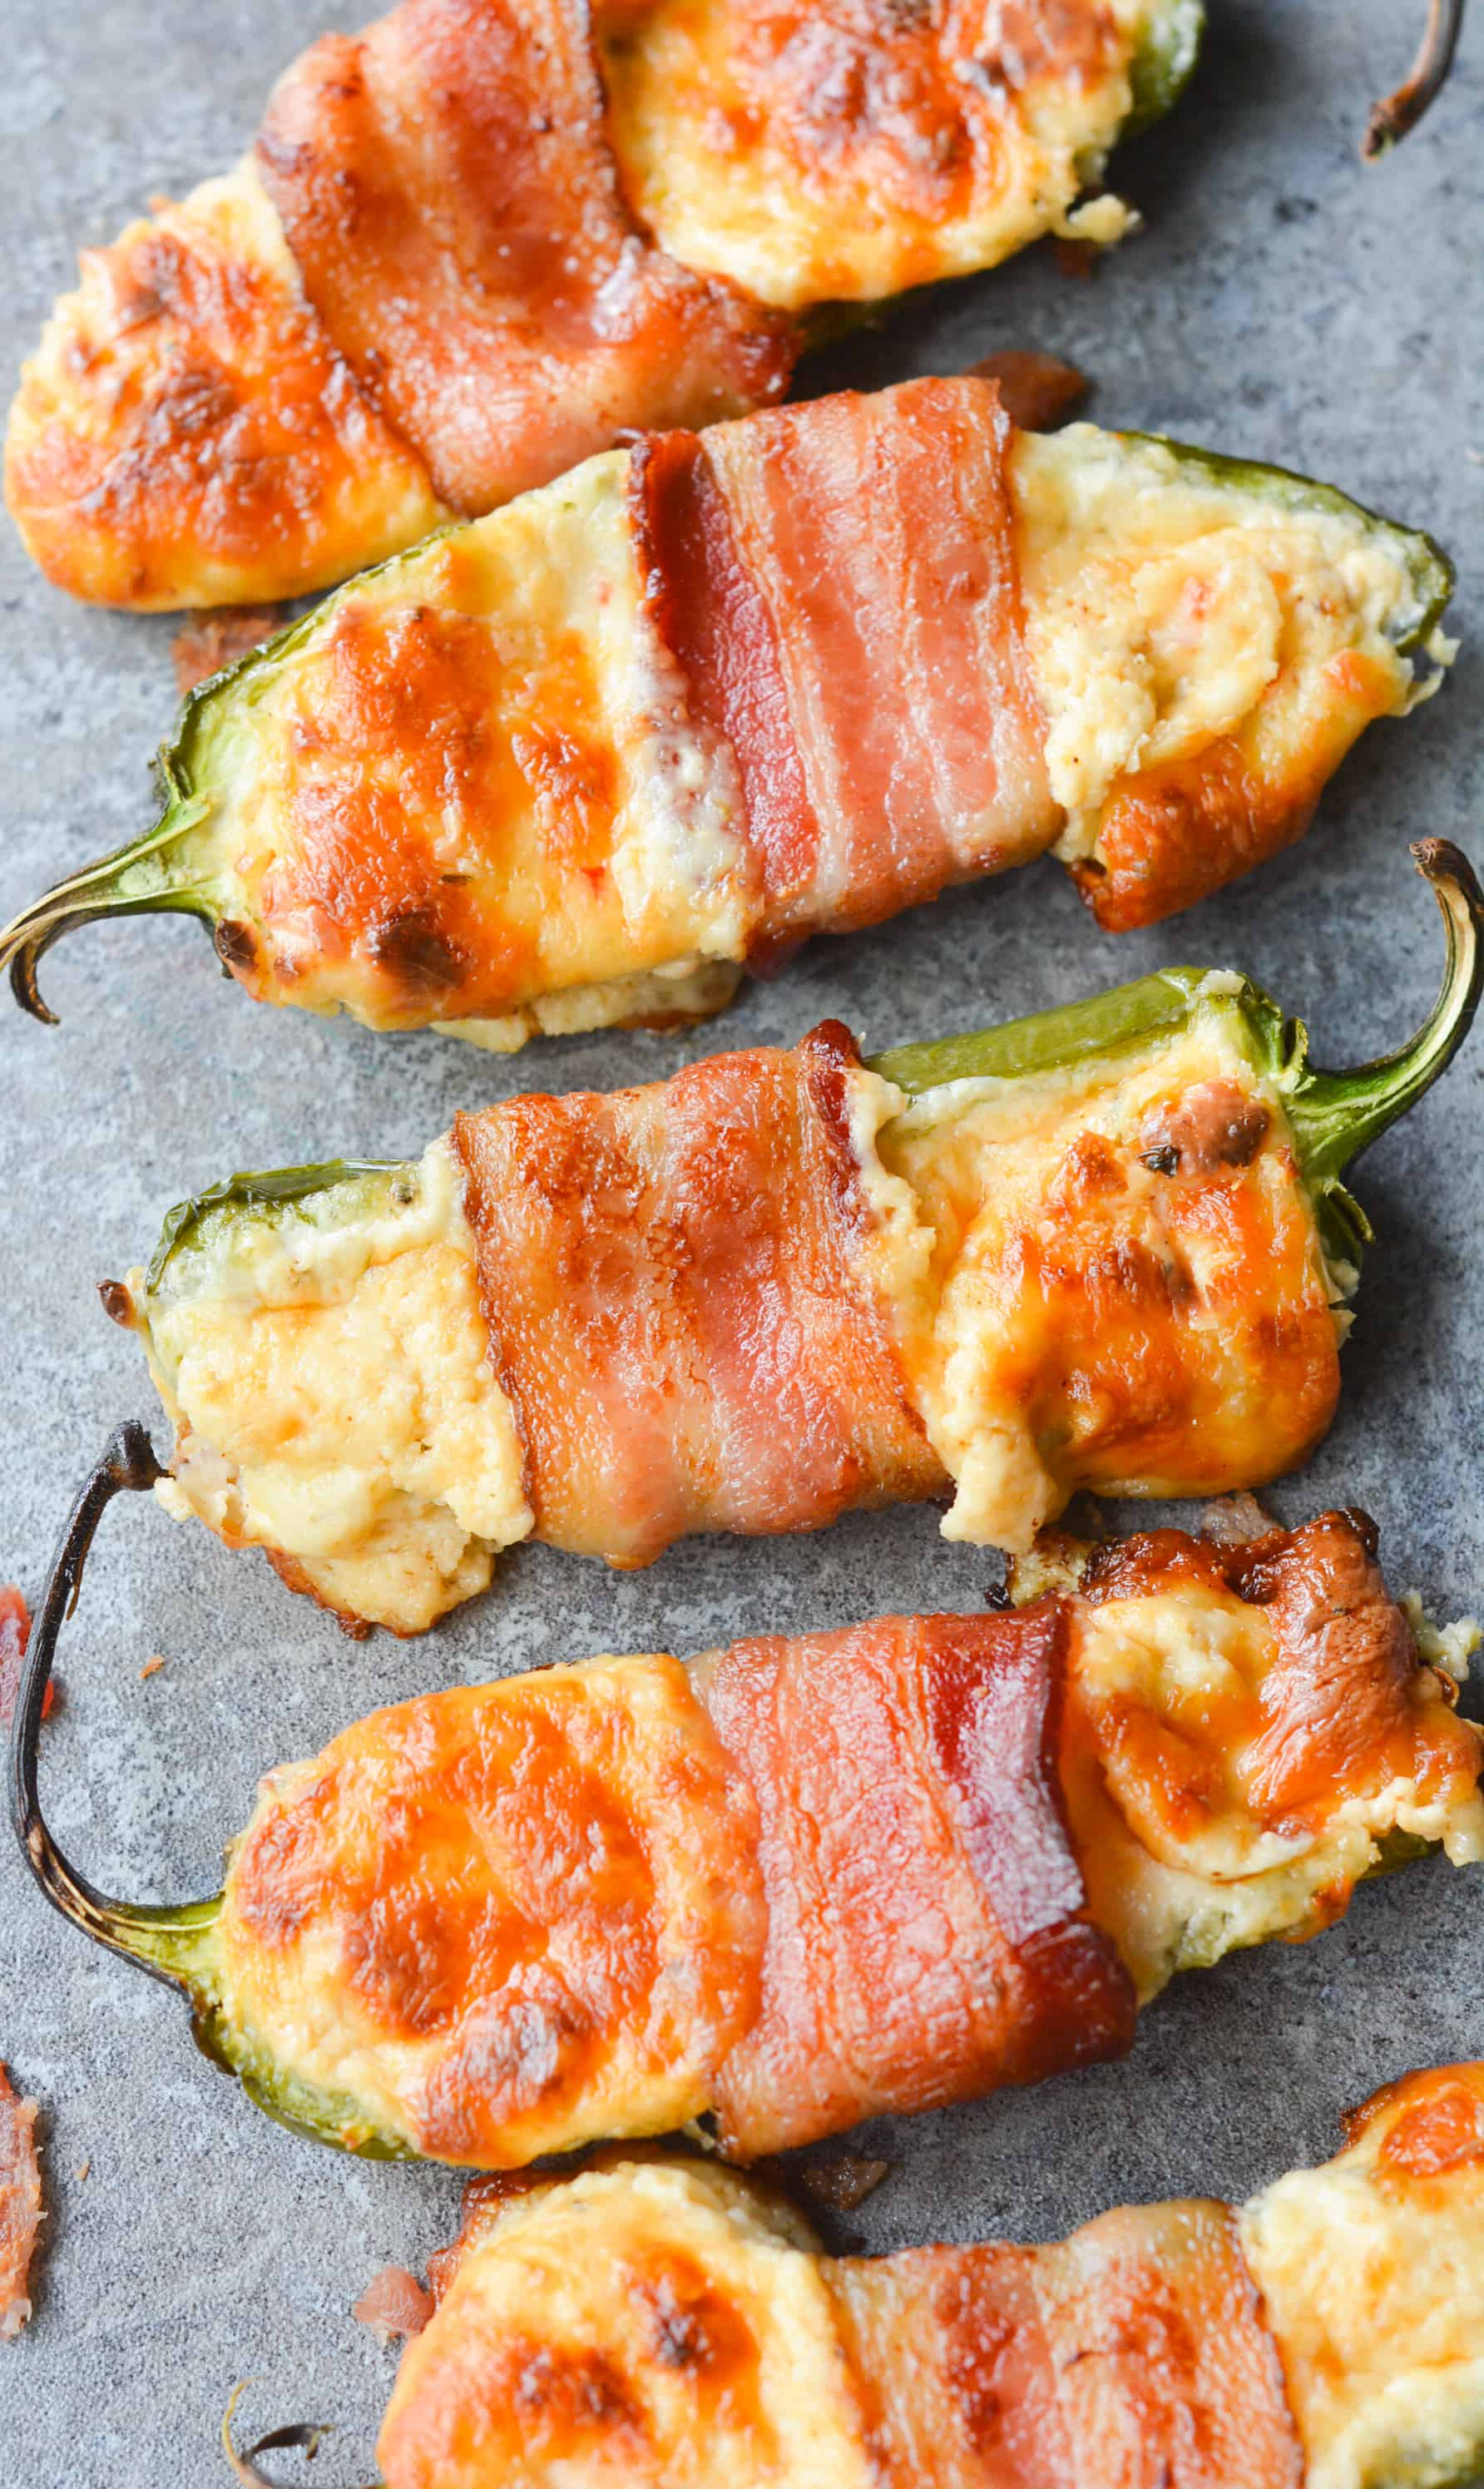 These Bacon Wrapped BBQ Jalapeno Poppers are an incredibly savory, flavorful low carb dish. Perfect to bring to any backyard BBQ, or to just enjoy at home! | heyketomama.com